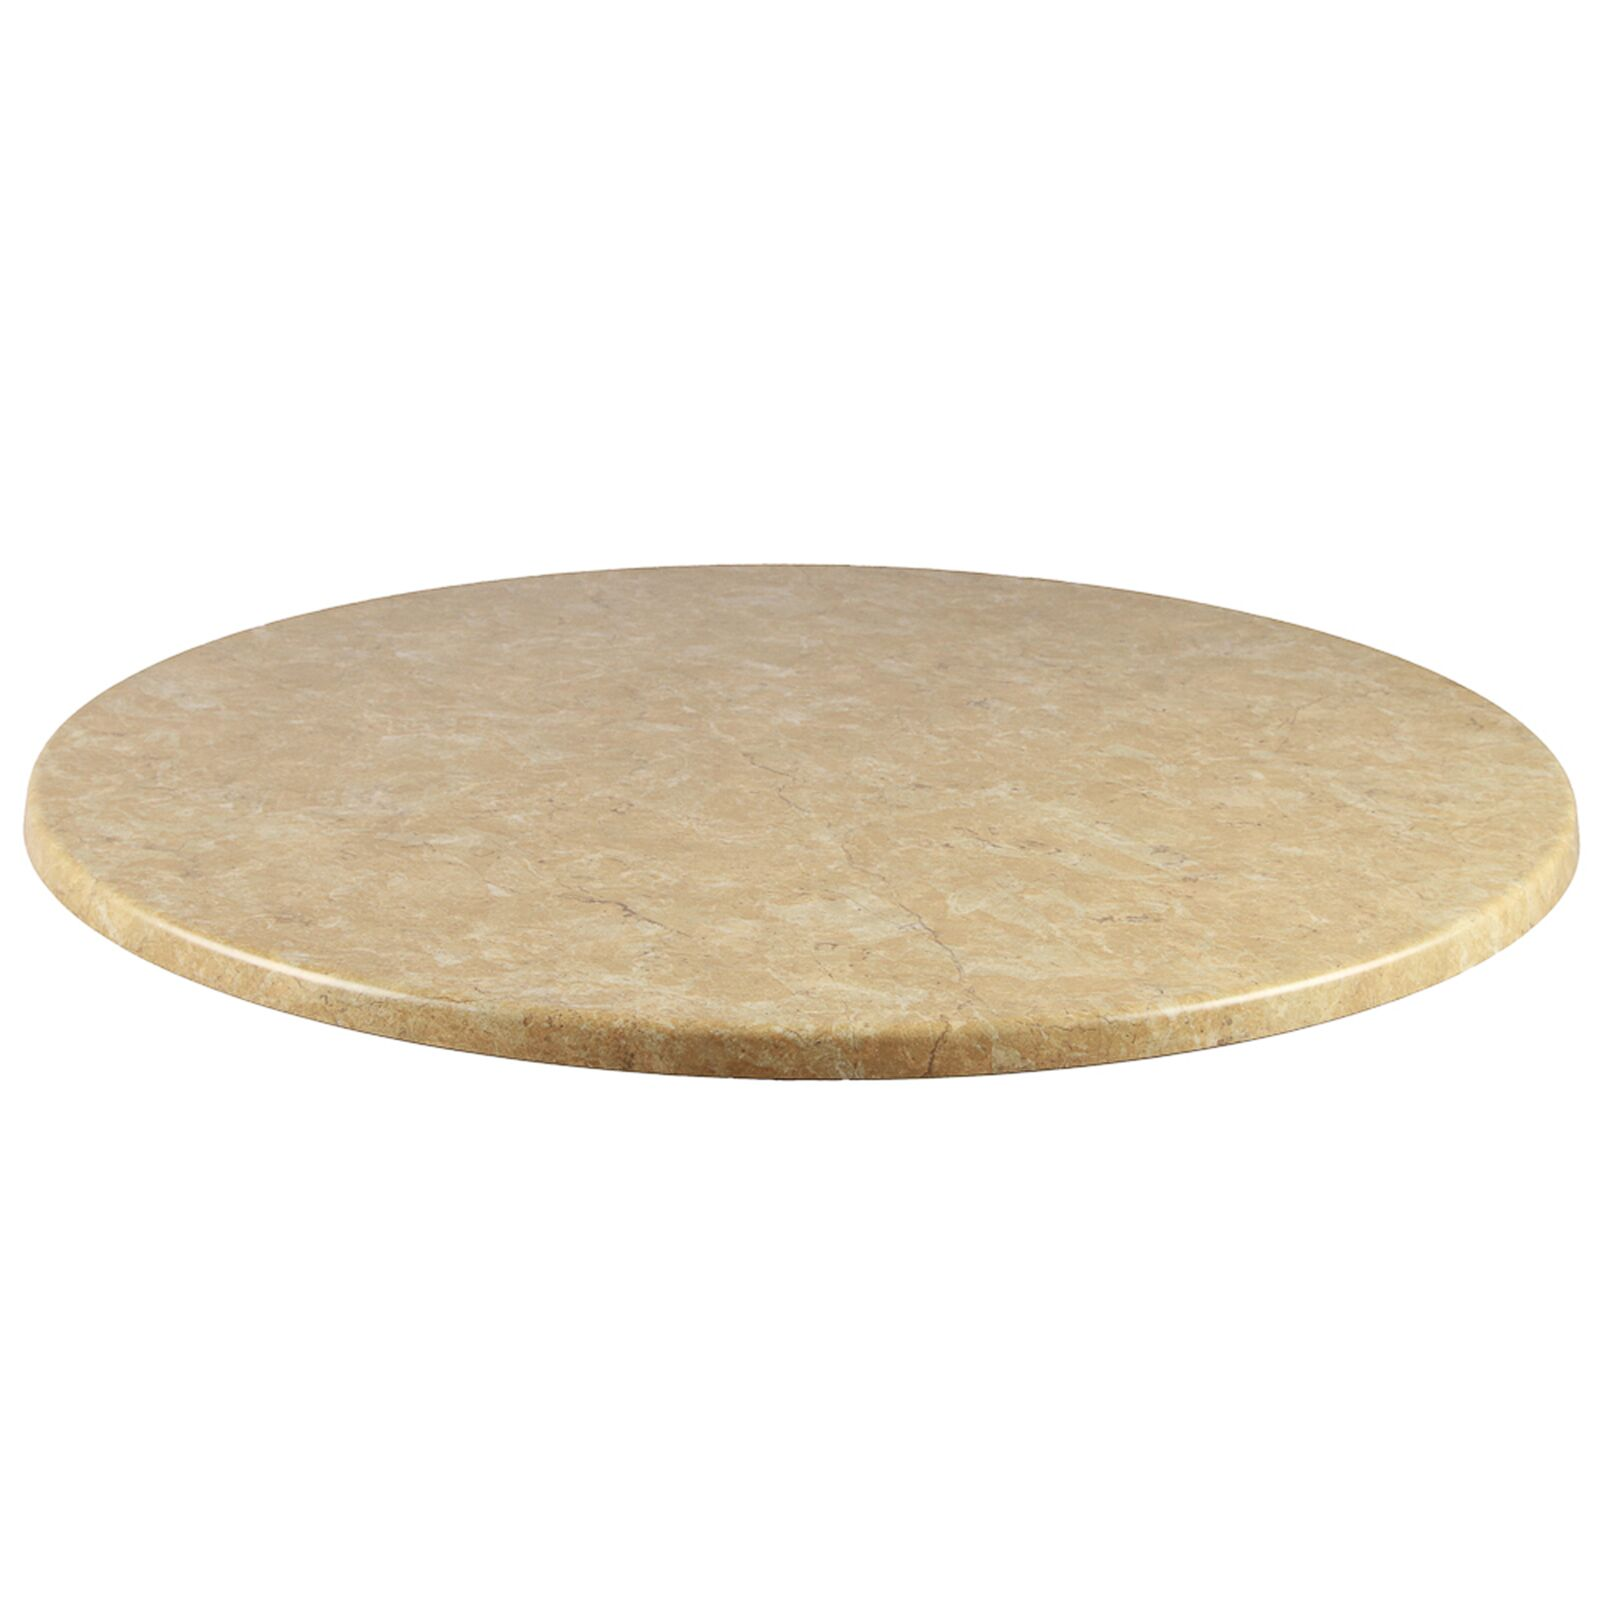 Duratop Round Table Top Finish: Colorado, Table Size: 28